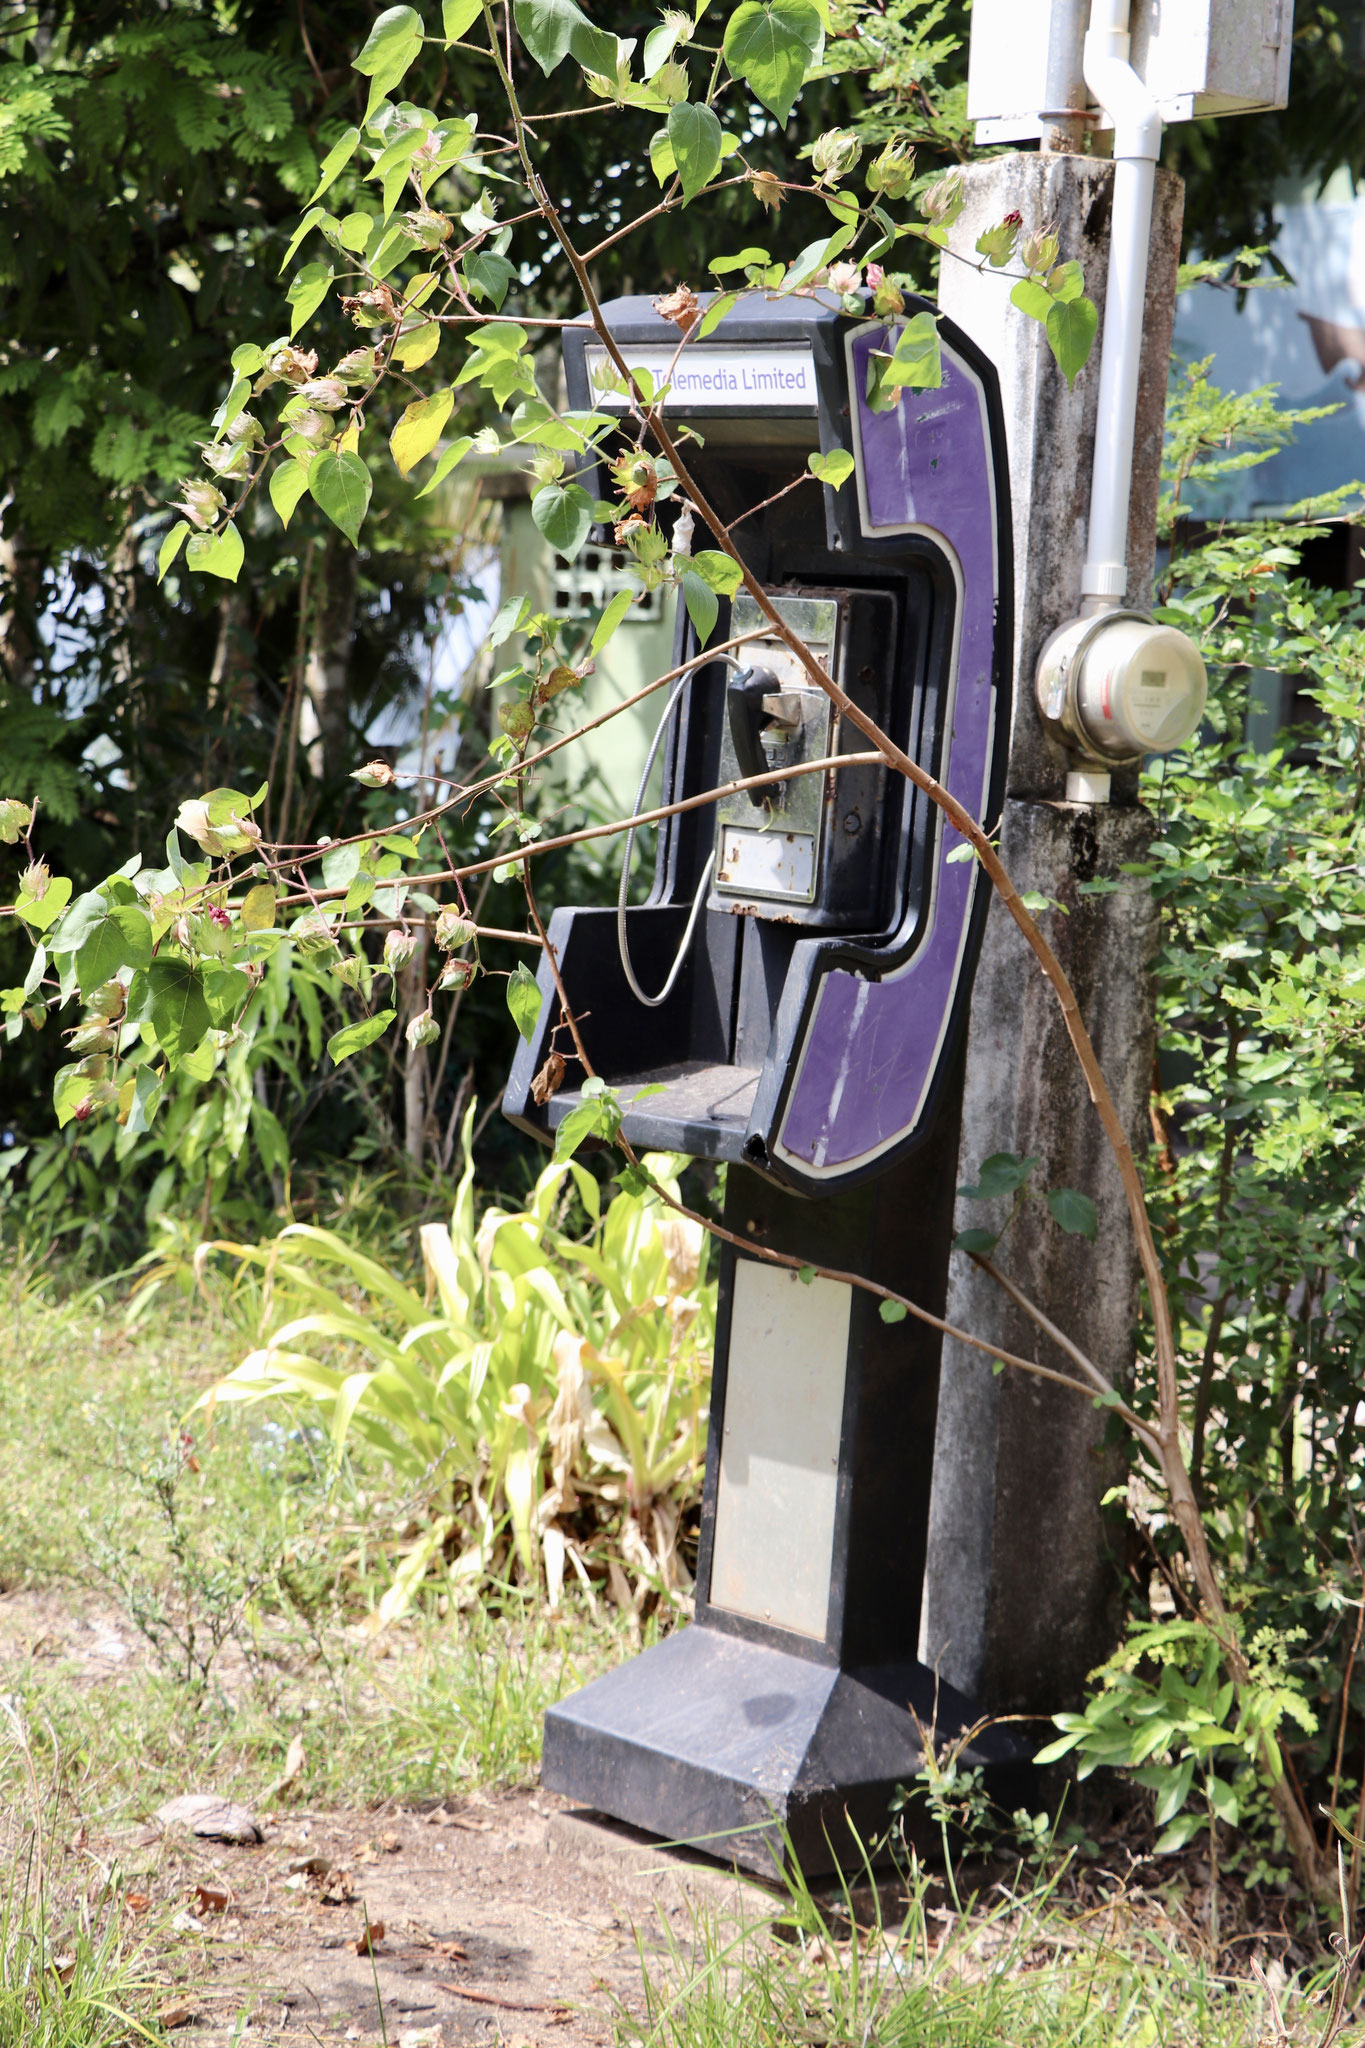 ..left overs of the days before mobile communication which obviously wasn't long ago